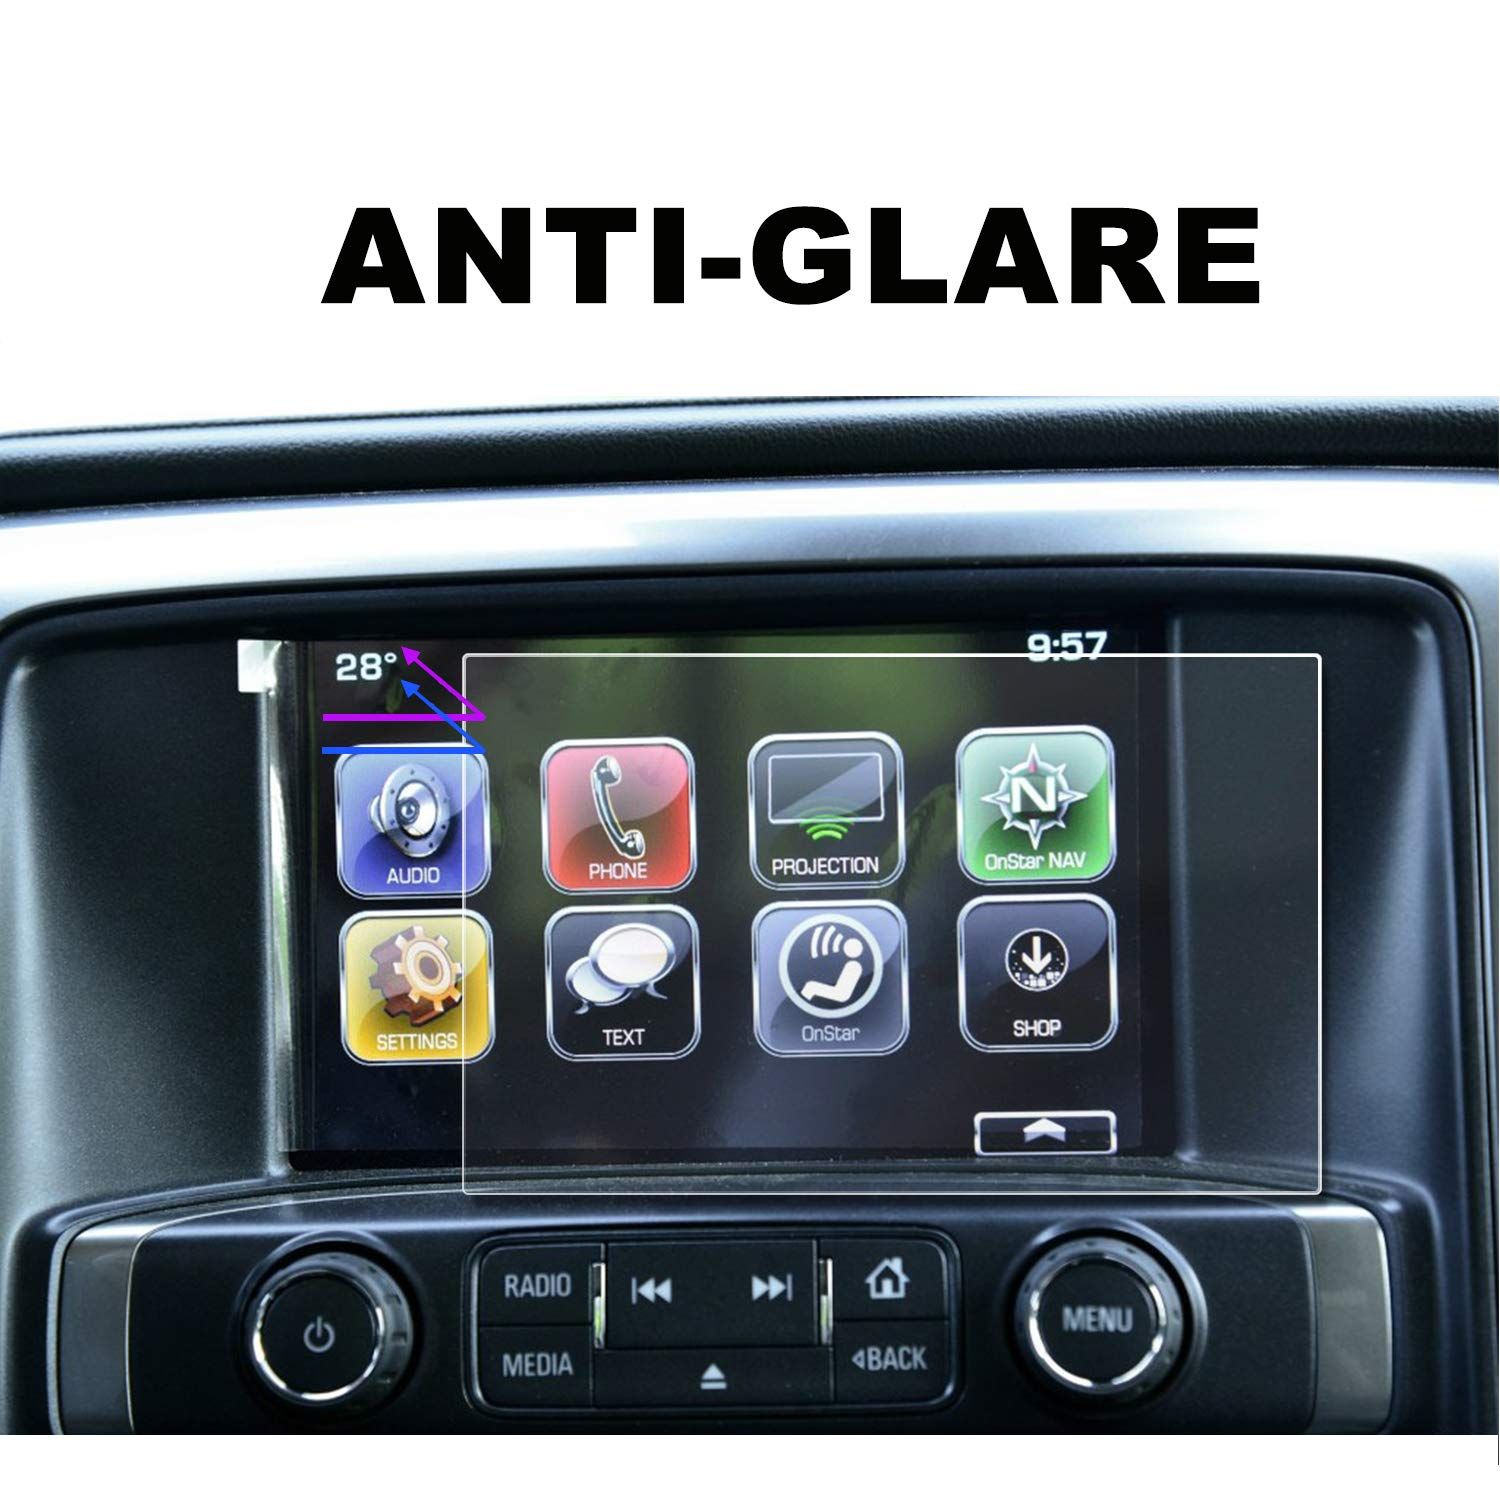 9H Tempered Glass Infotainment Center Touch Display Screen Protector Anti Scratch High Clarity LFOTPP Chevrolet SILVERADO 1500 8 Inch MyLink 2014-2018 Car Navigation Screen Protector,